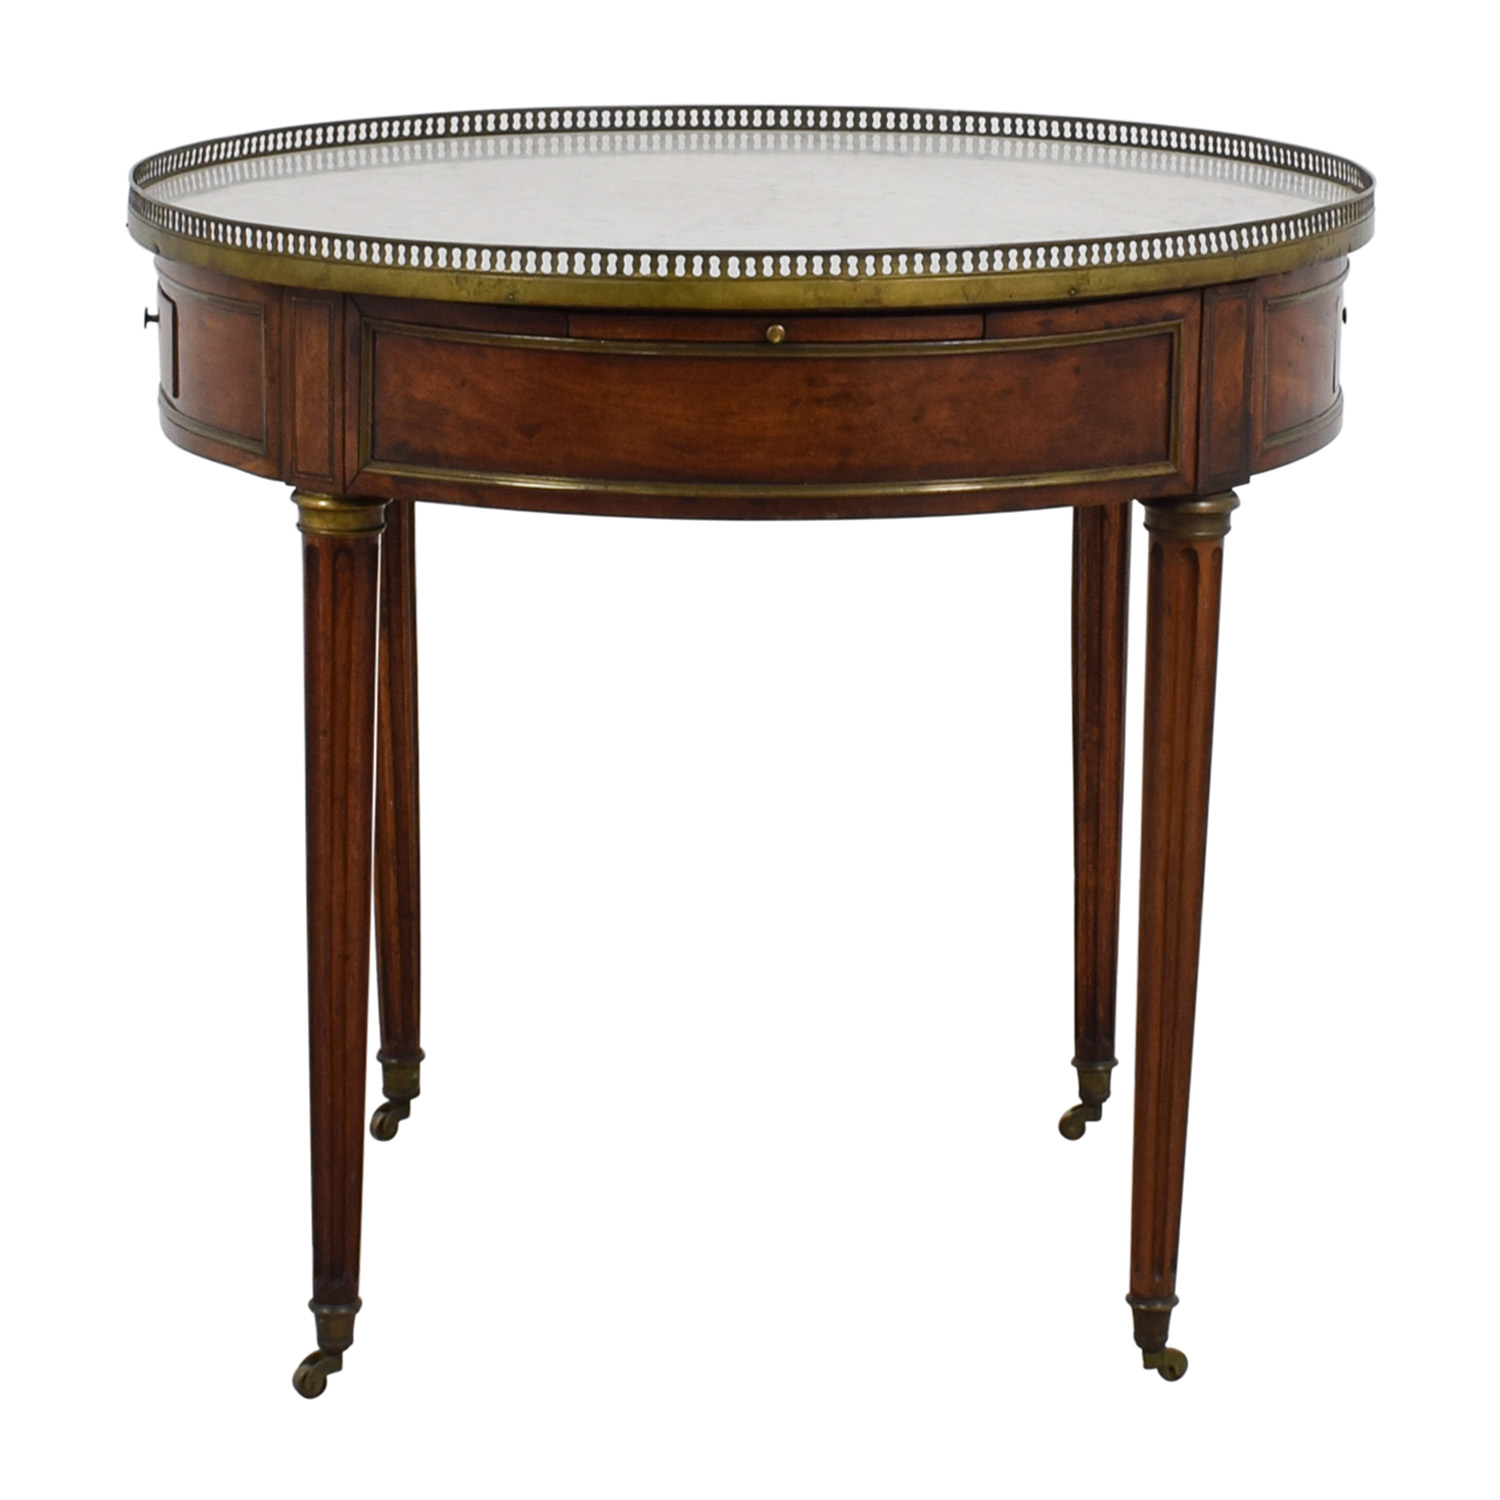 Antique Round Table with Marble Top coupon